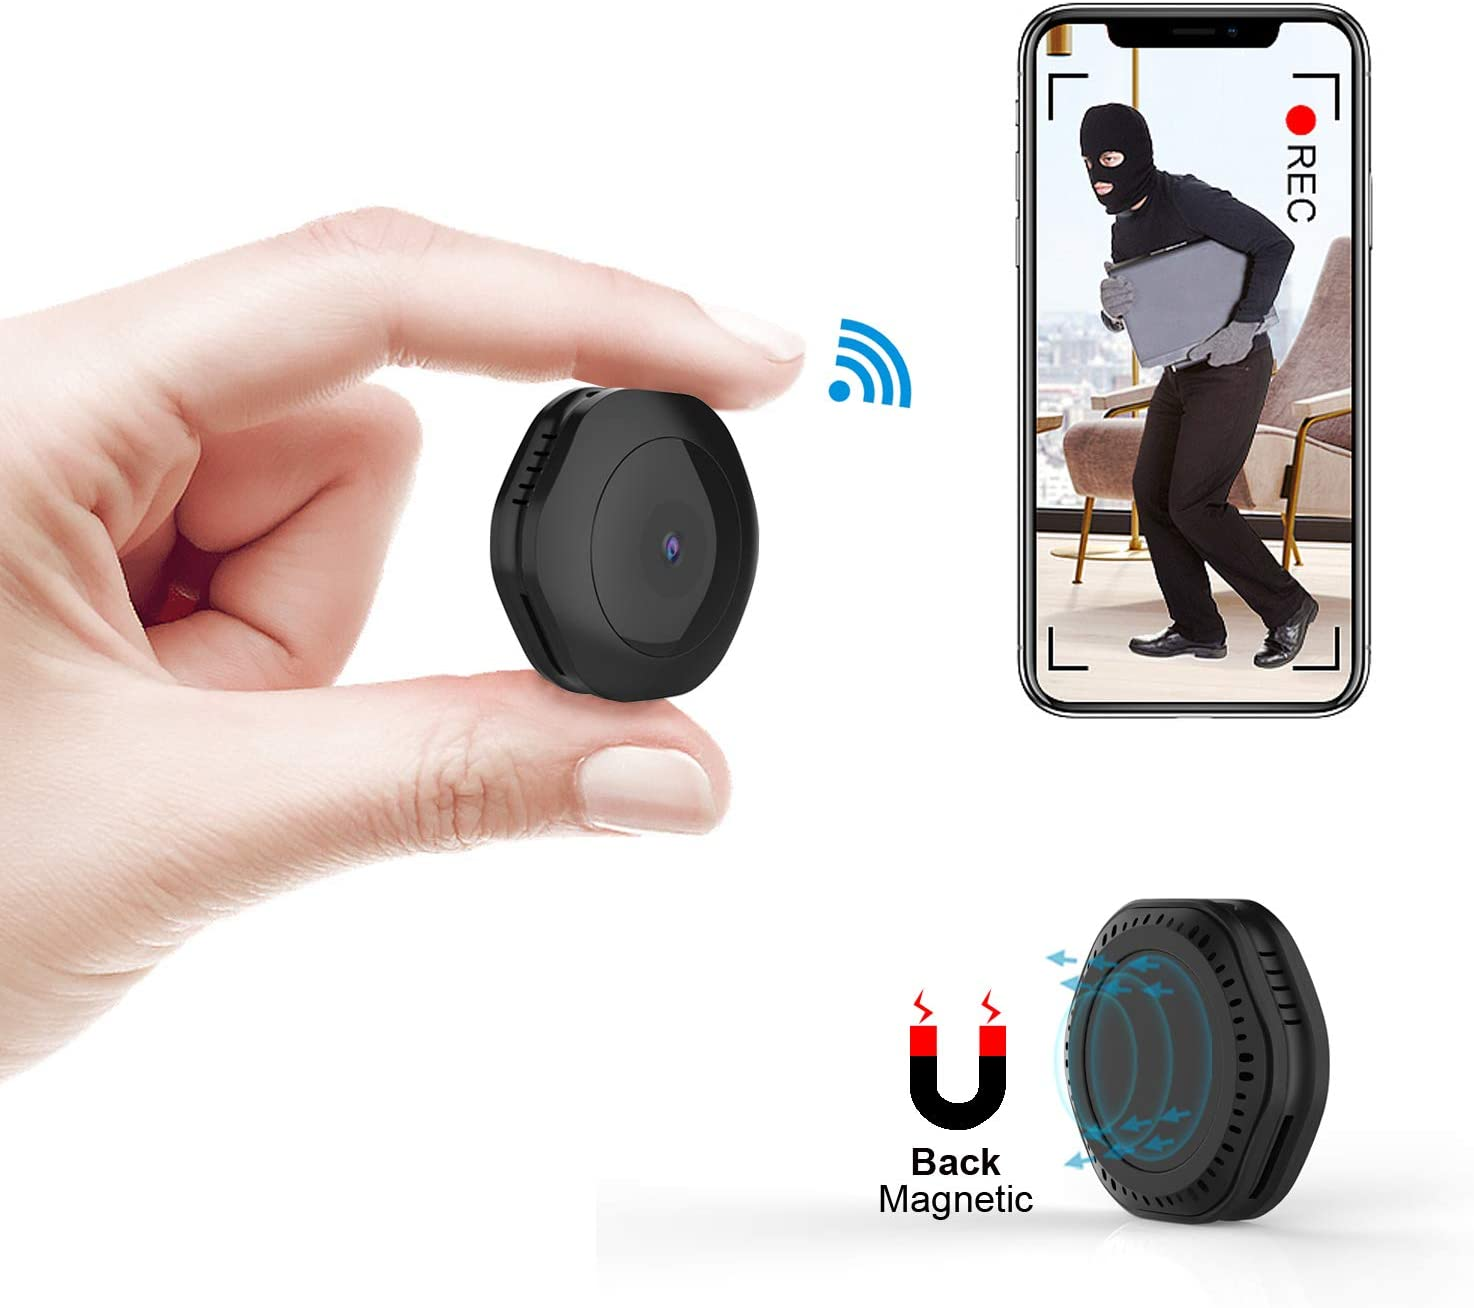 Mini WiFi Camera,CHUHE FHD 1080P Hidden Spy Cameras Wireless Portable Body Nanny Cam Indoor Outdoor Security Small Camera with Motion Detection Night Vision